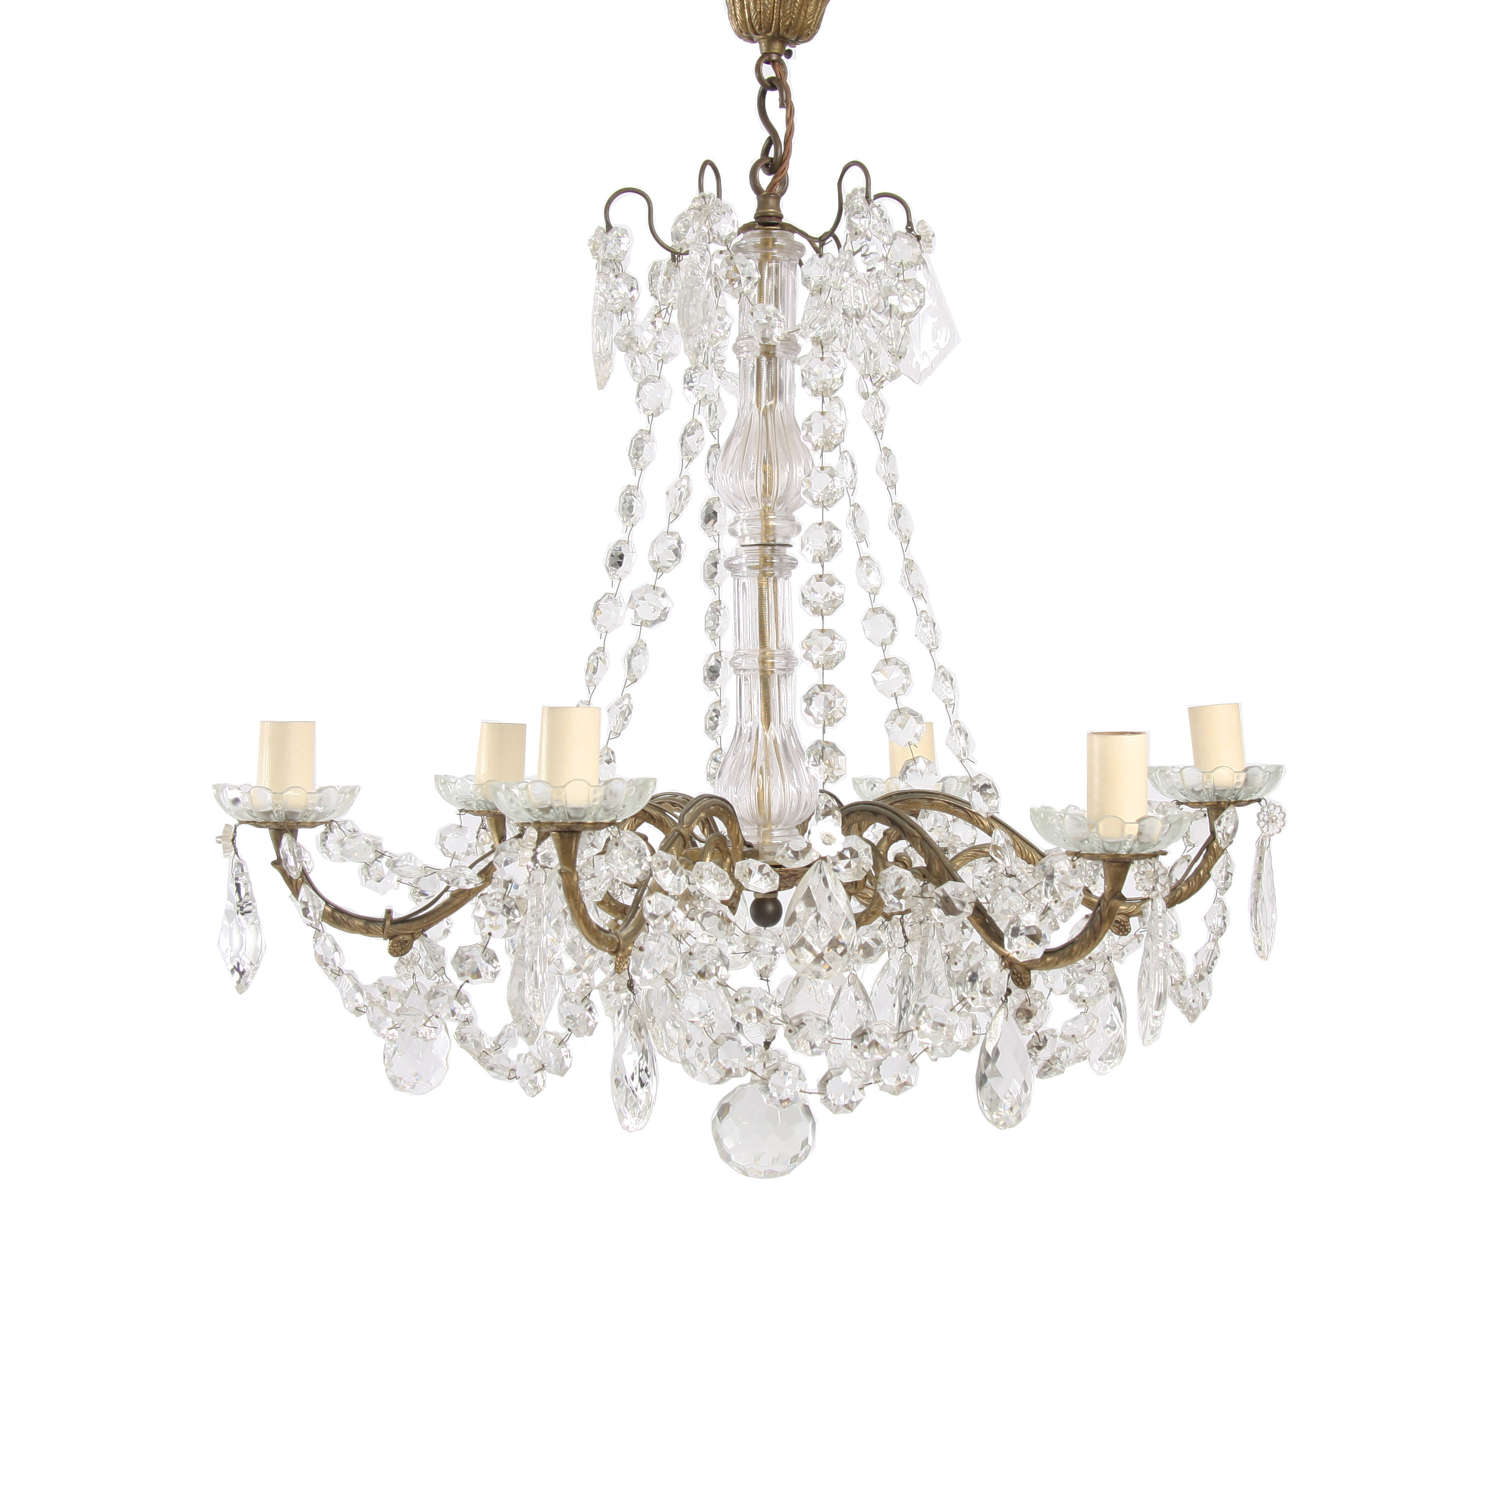 French Gilt Metal and Crystal Chandelier